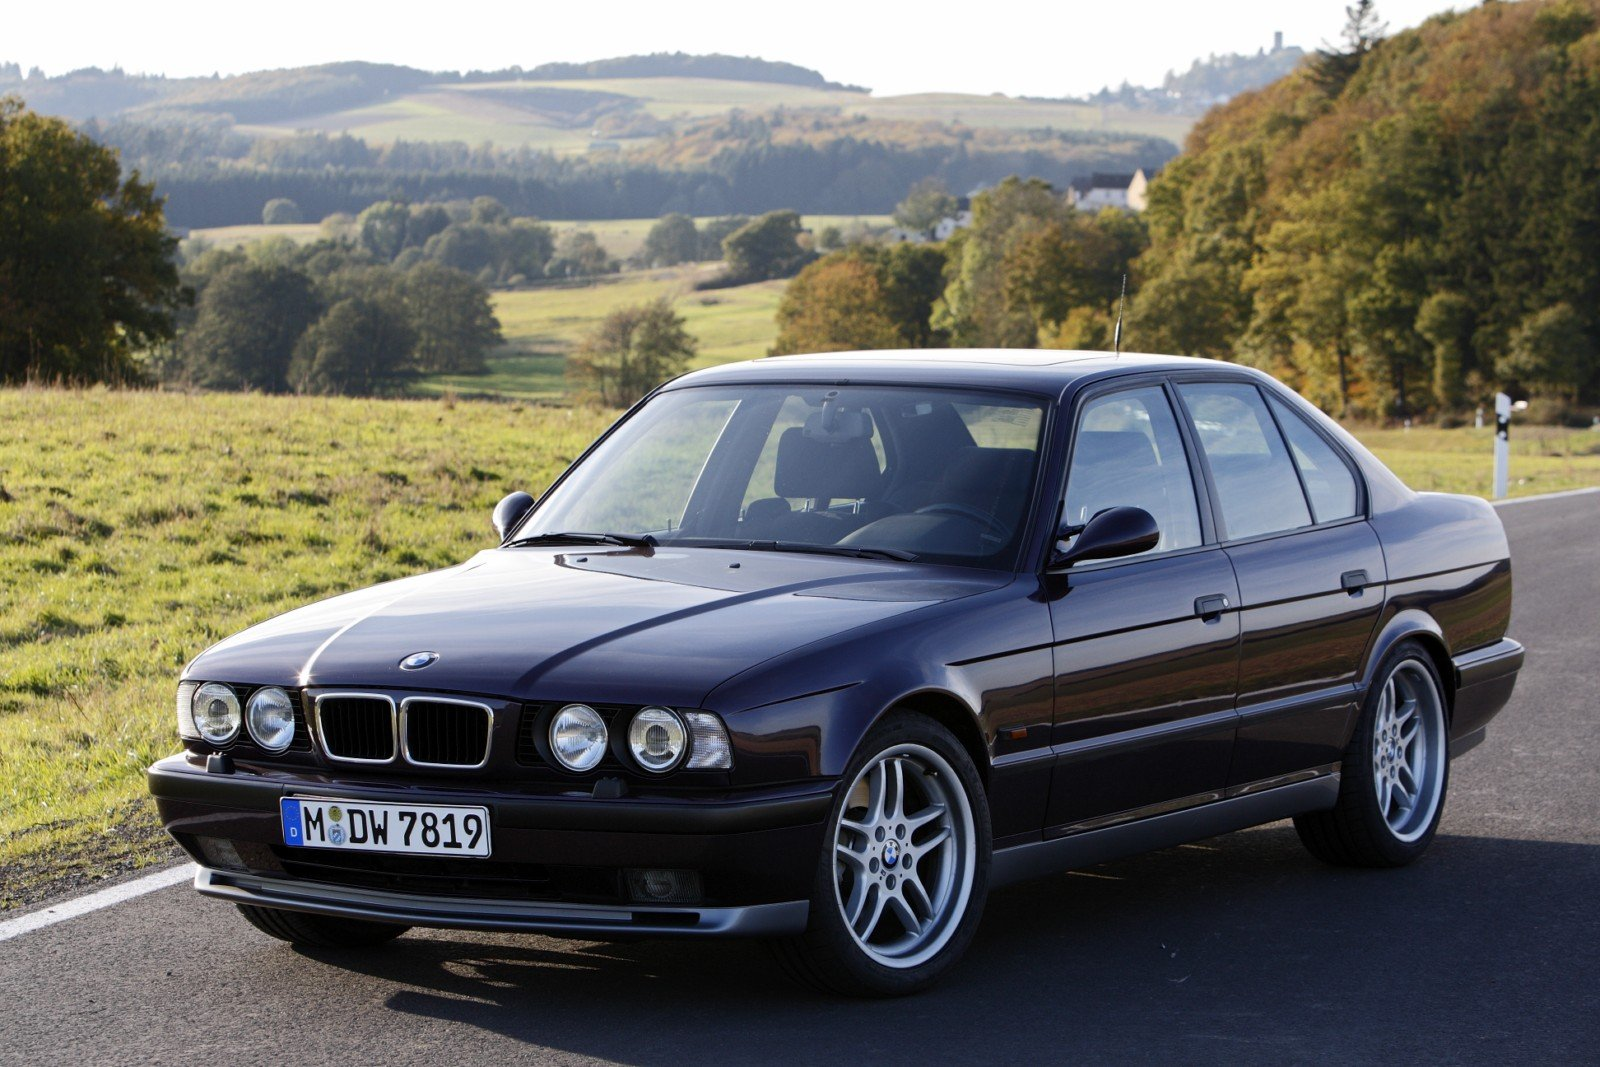 1995 Bmw M5 (e34) – pictures, information and specs - Auto-Database.com